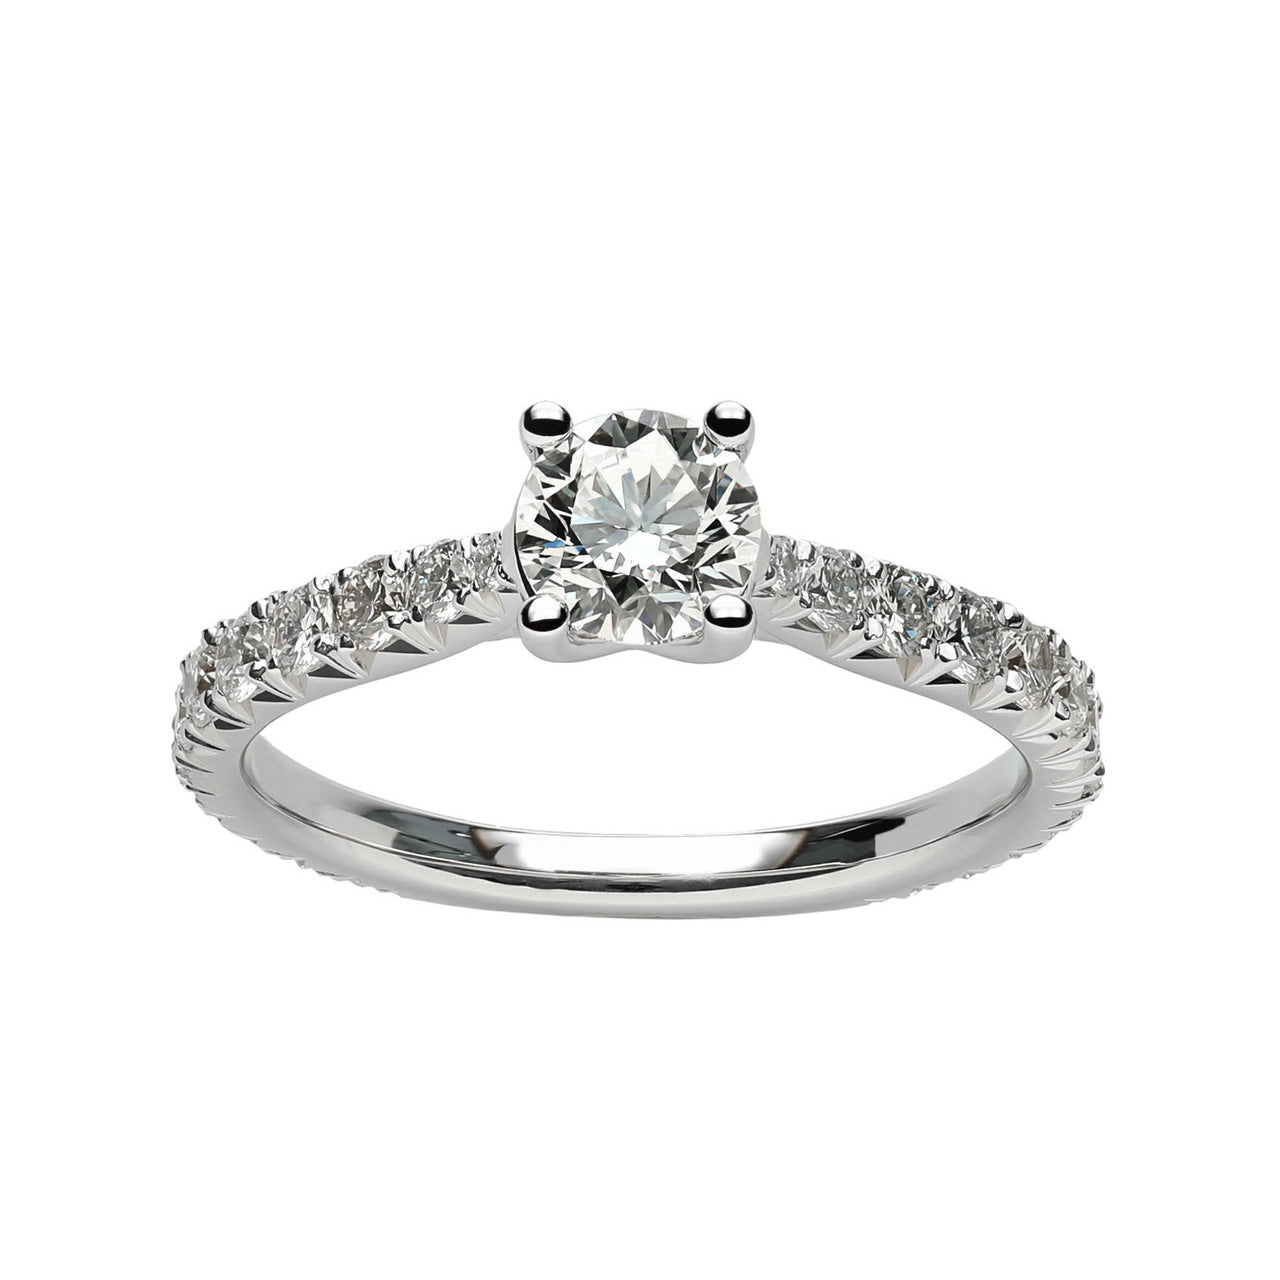 Fink's 14K White Gold Round Diamond Shank Accent Engagement Ring